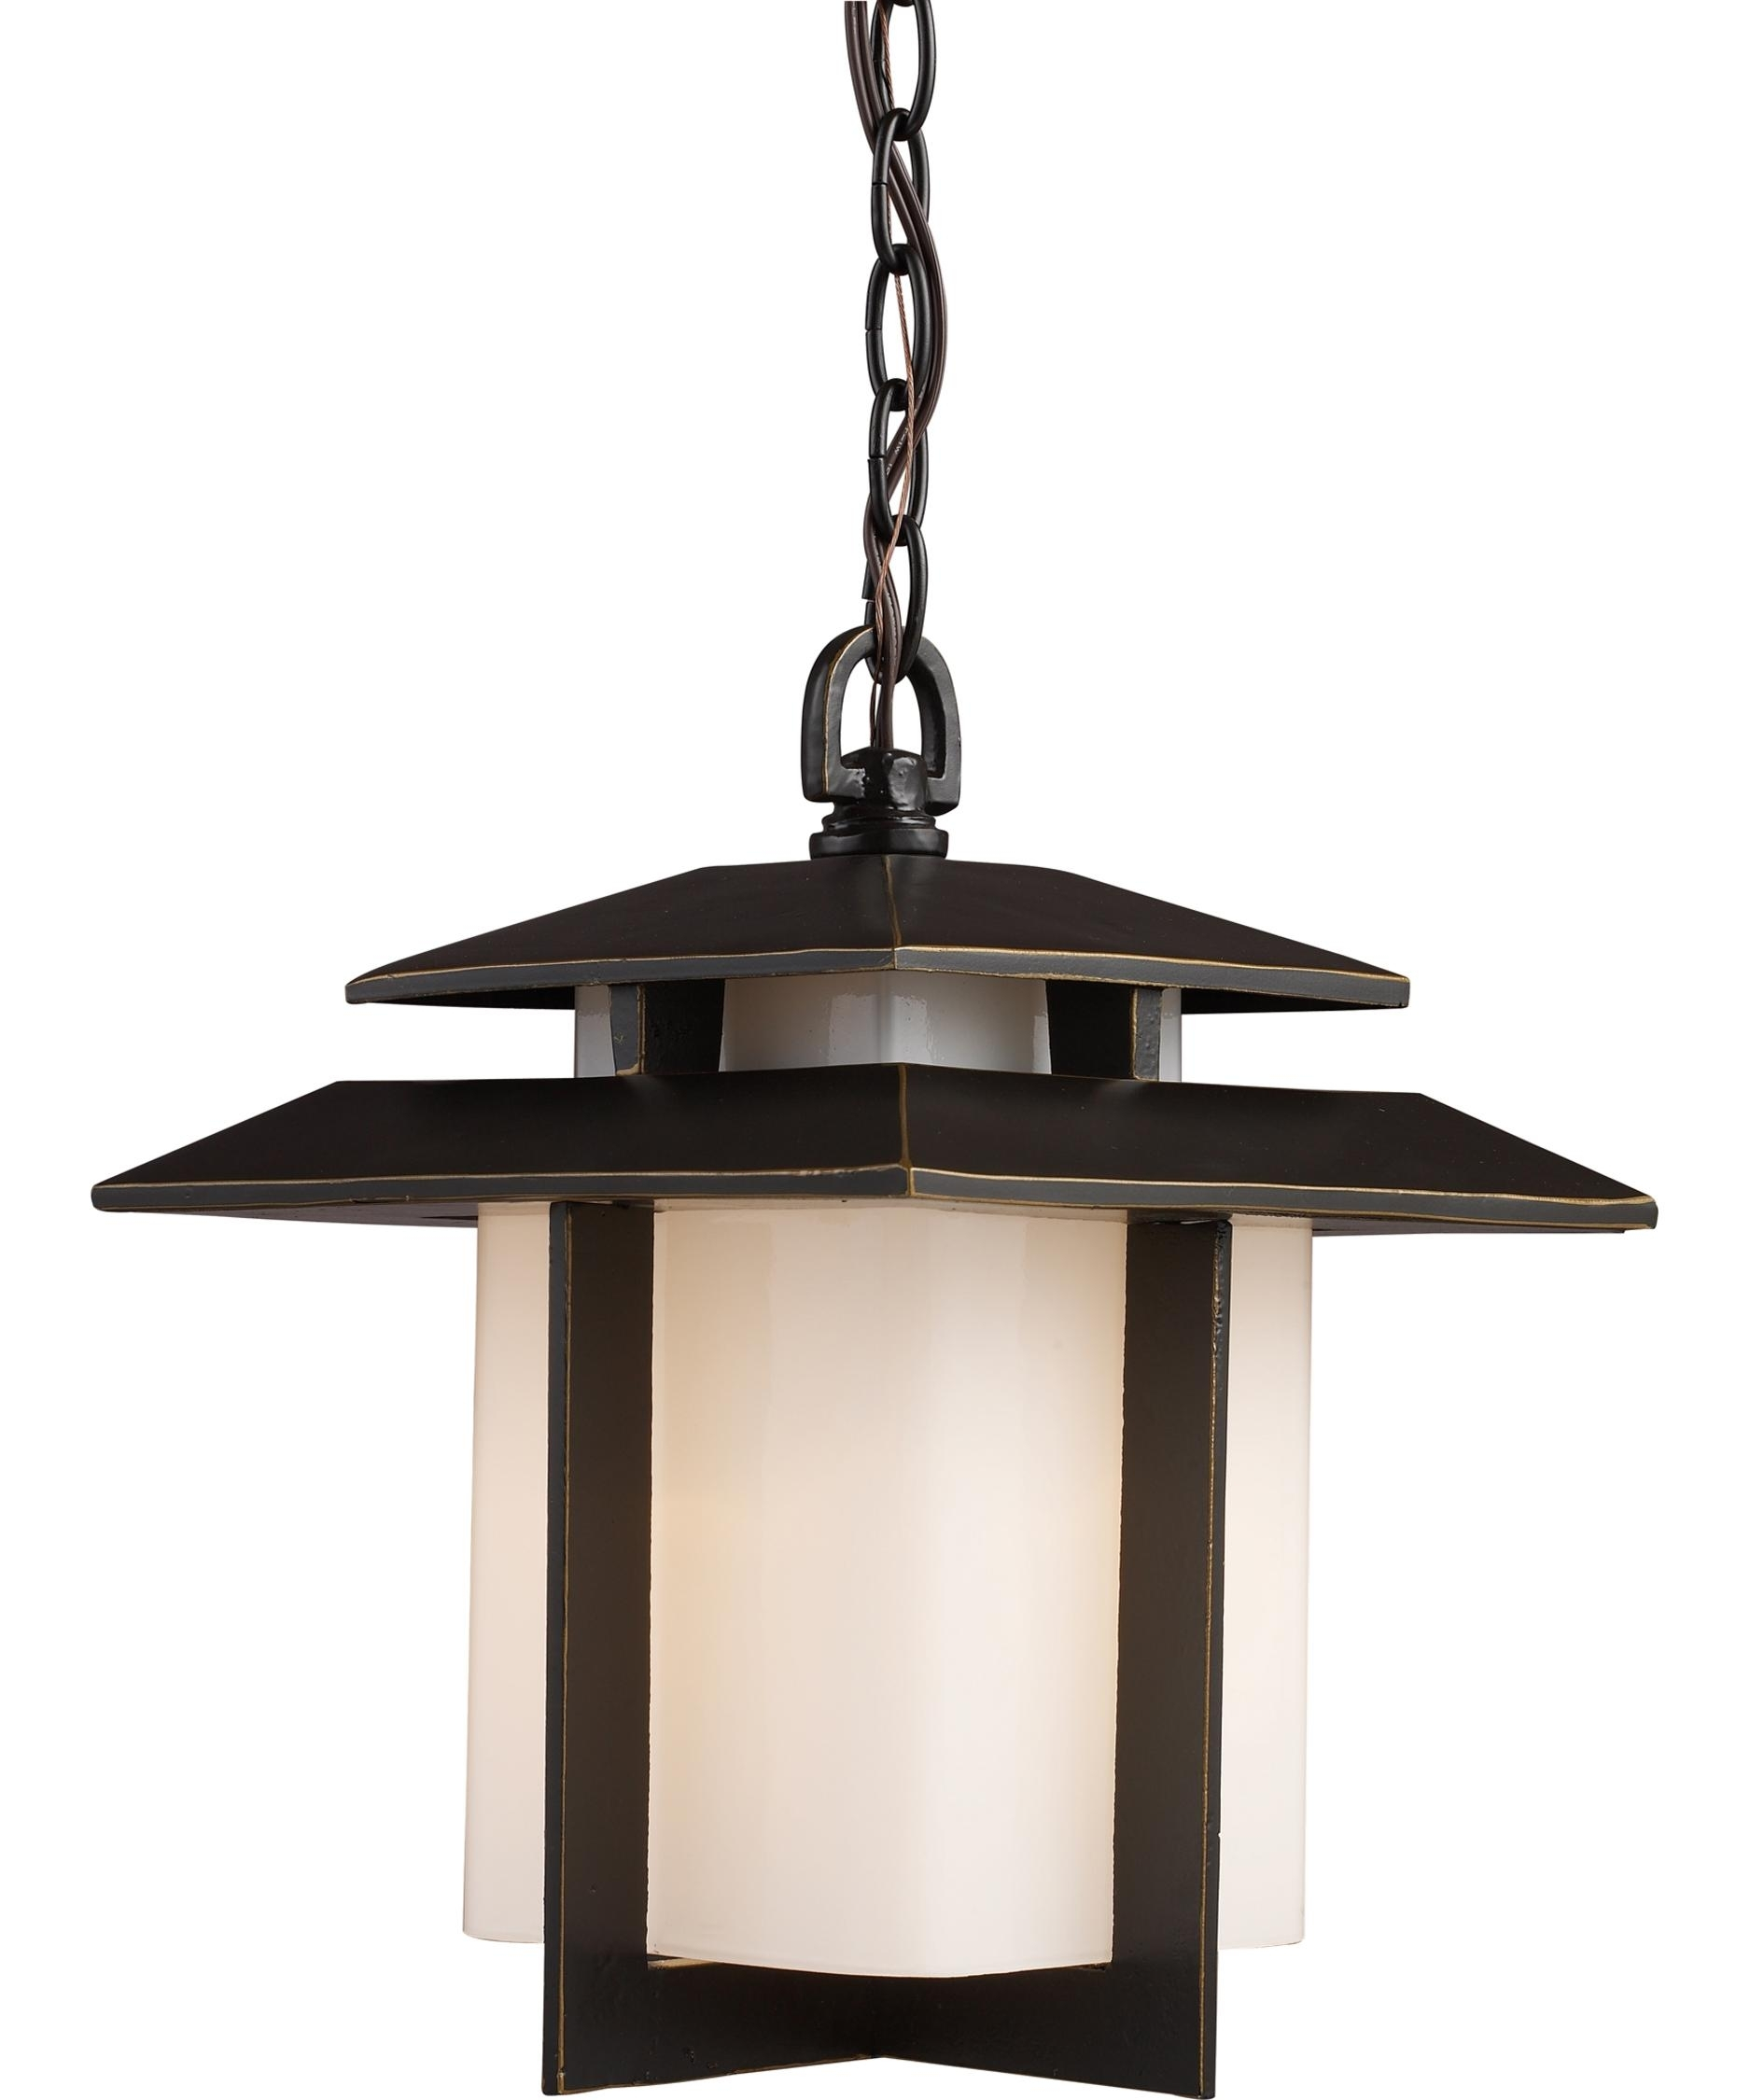 Light : Outdoor Lighting Ideas Without Electricity Exterior Fixtures With Regard To Outdoor Lighting Pendant Fixtures (#11 of 15)